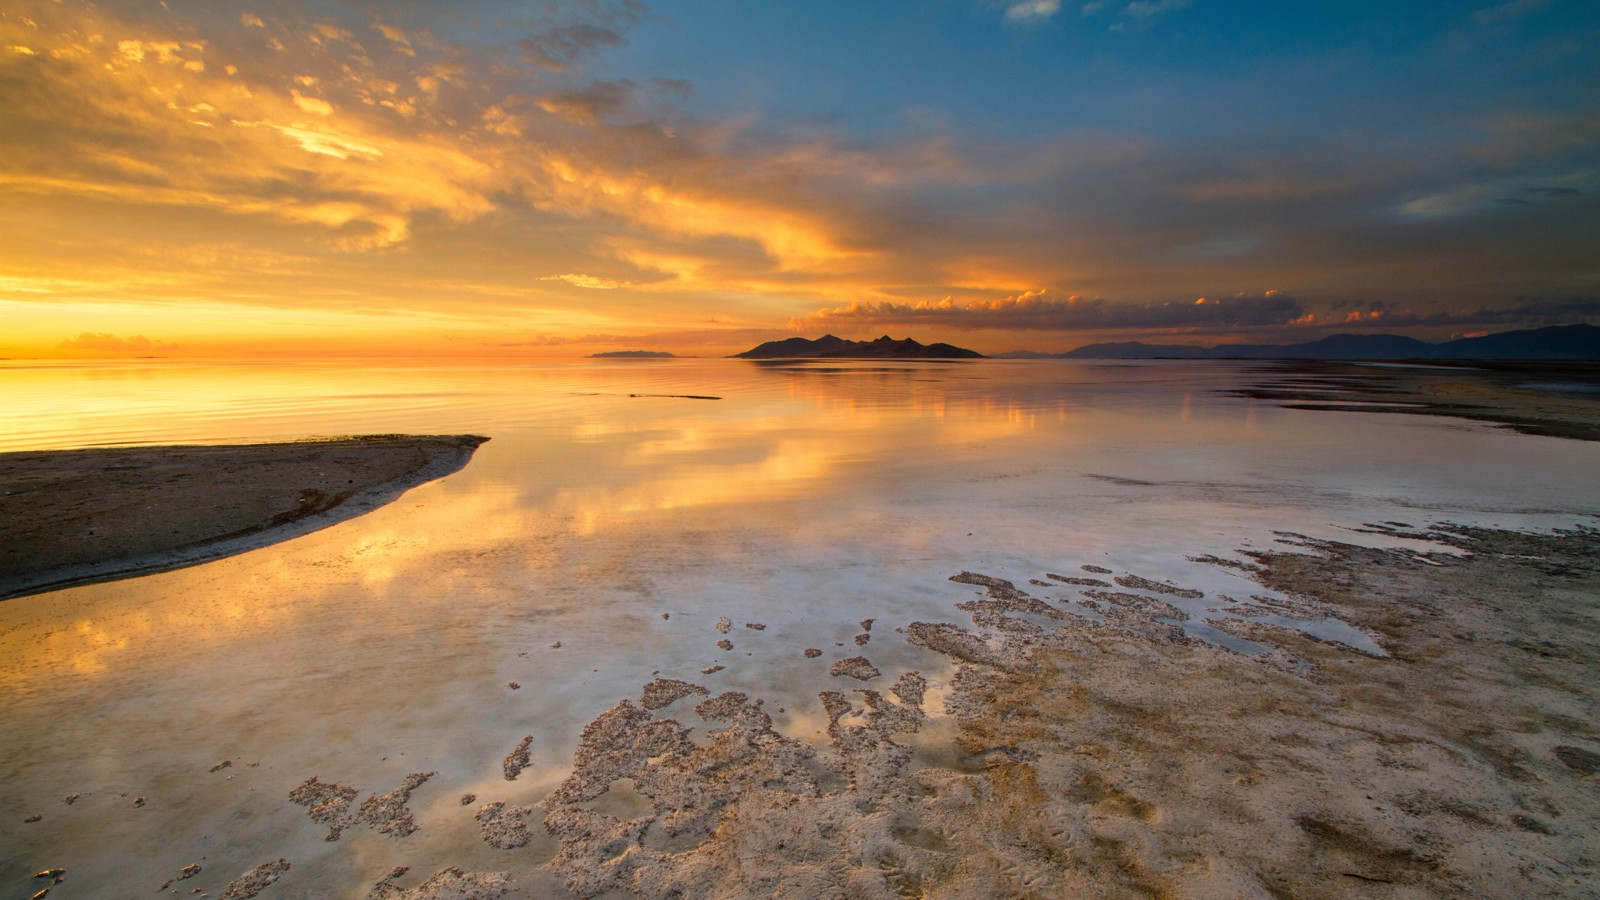 Sunset at the SaltAir Beach, Great Salt Lake, Utah